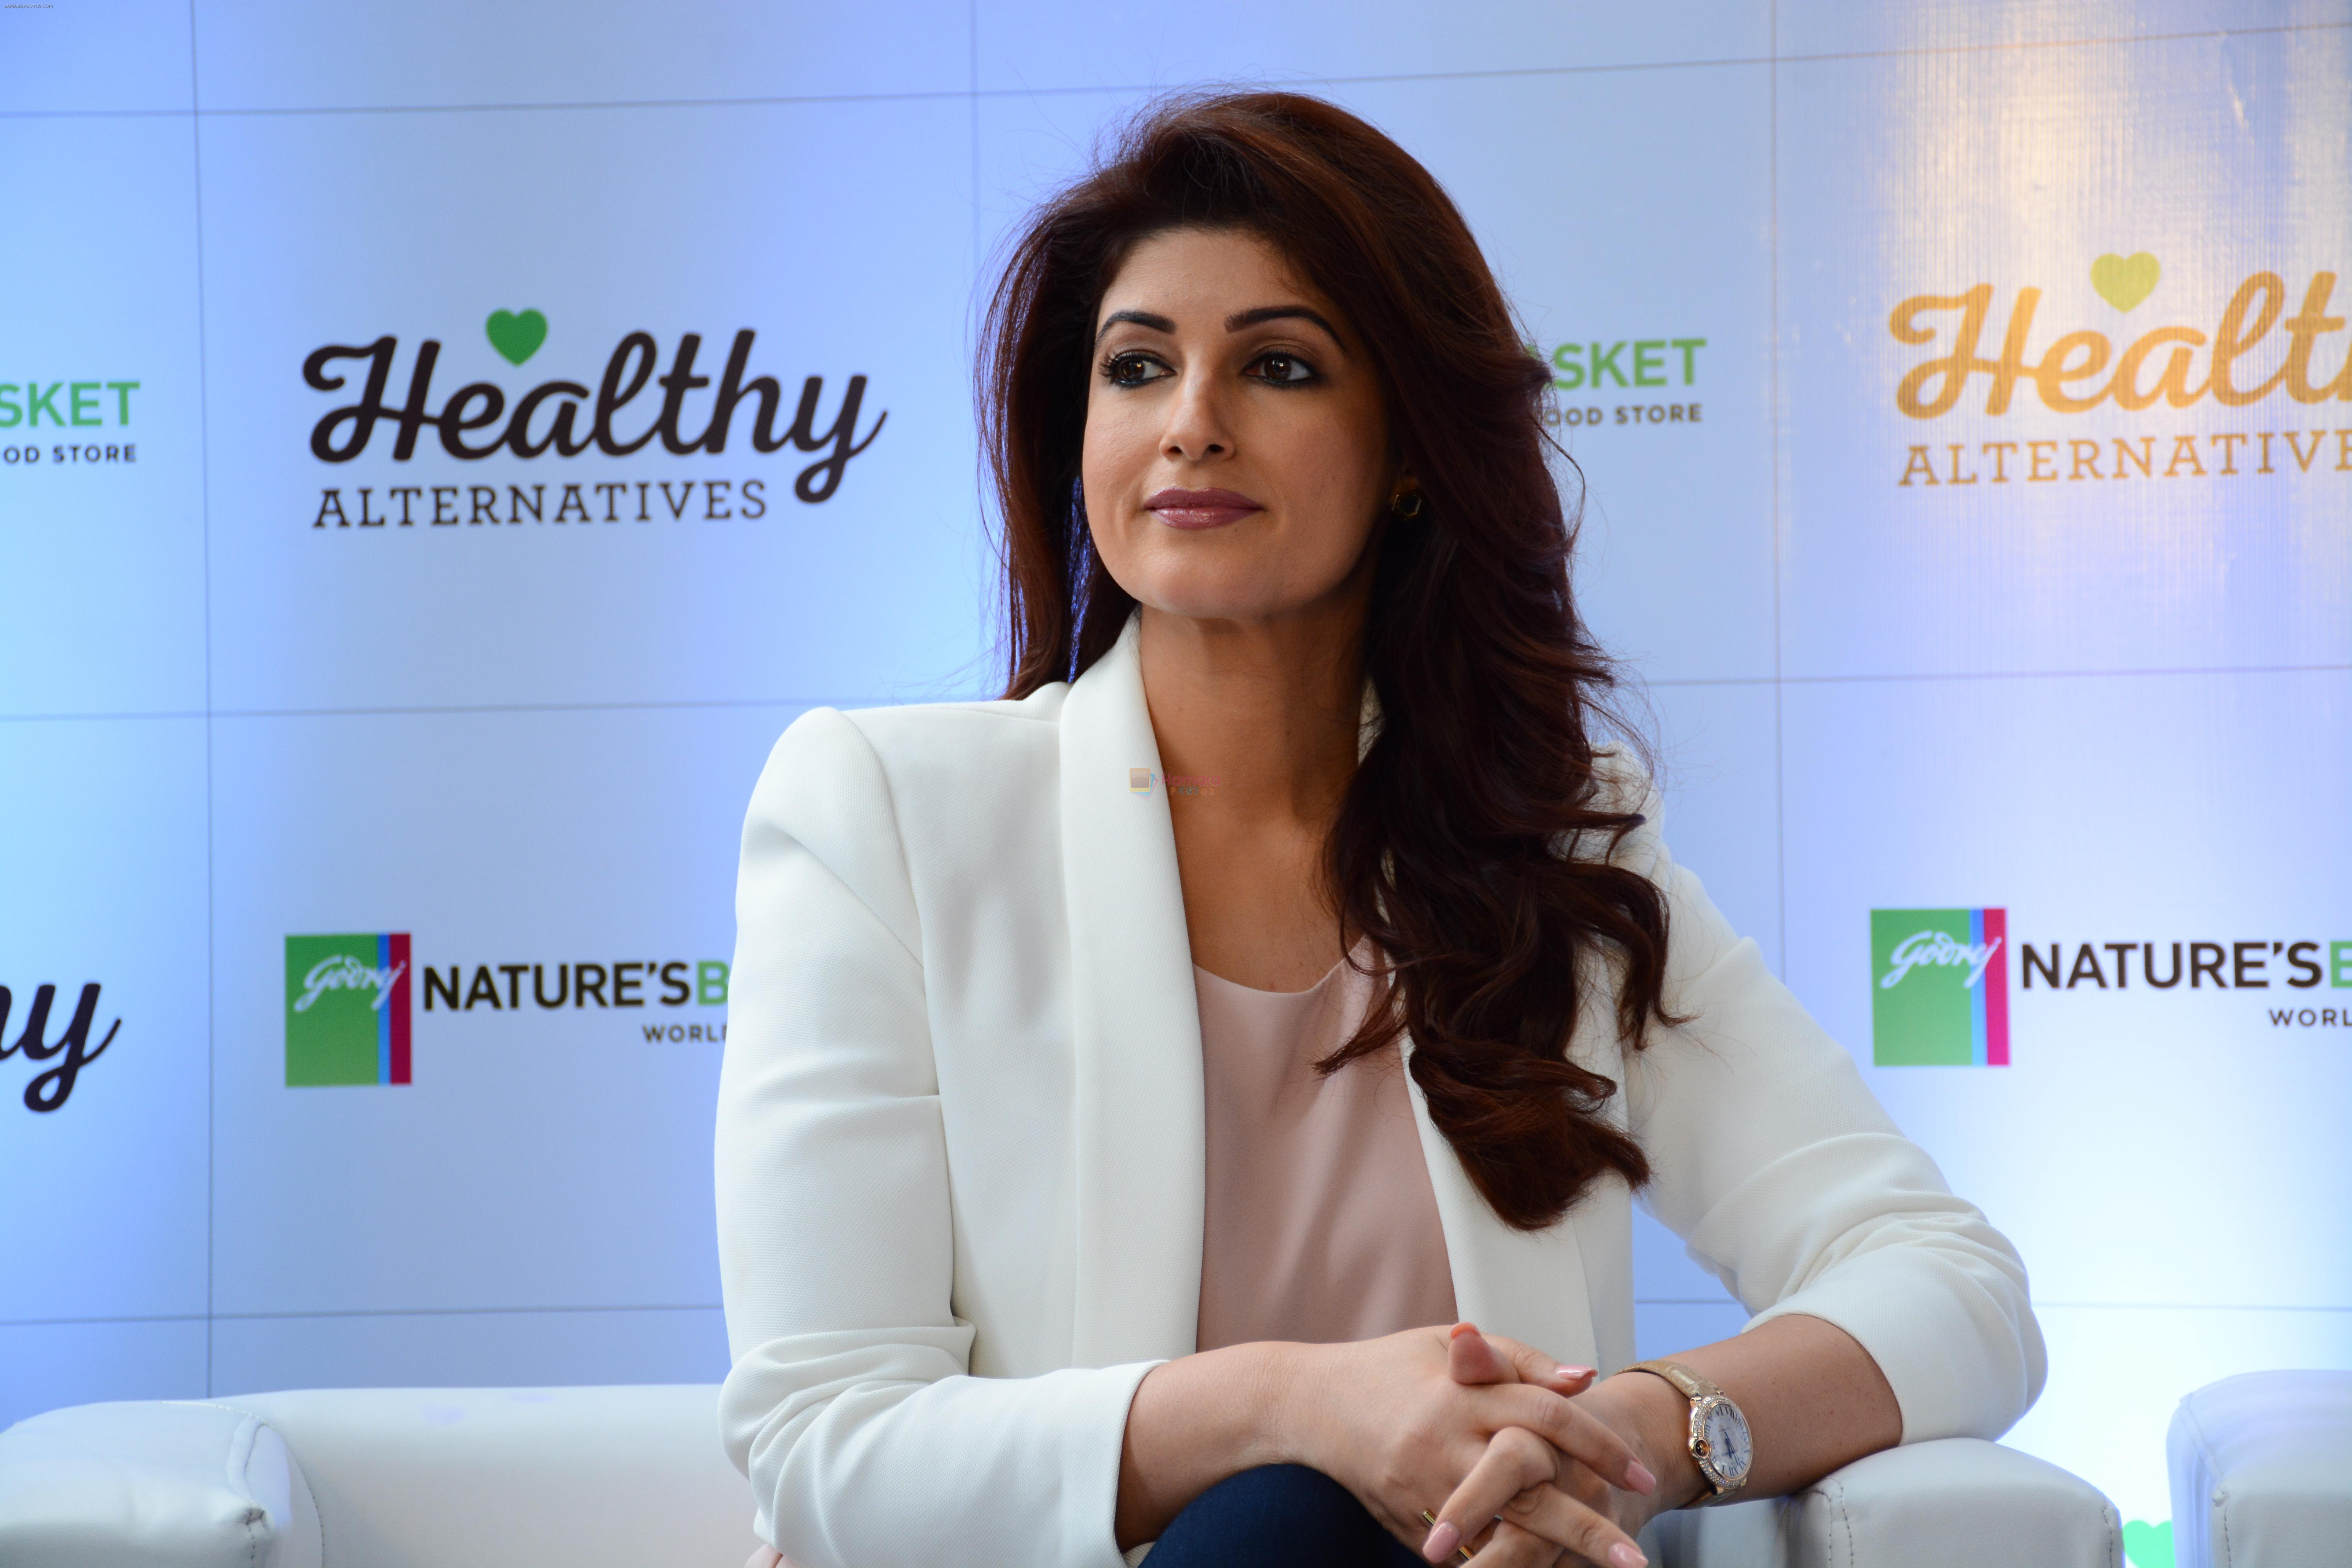 Twinkle Khanna during the launch of Healthy Alternatives